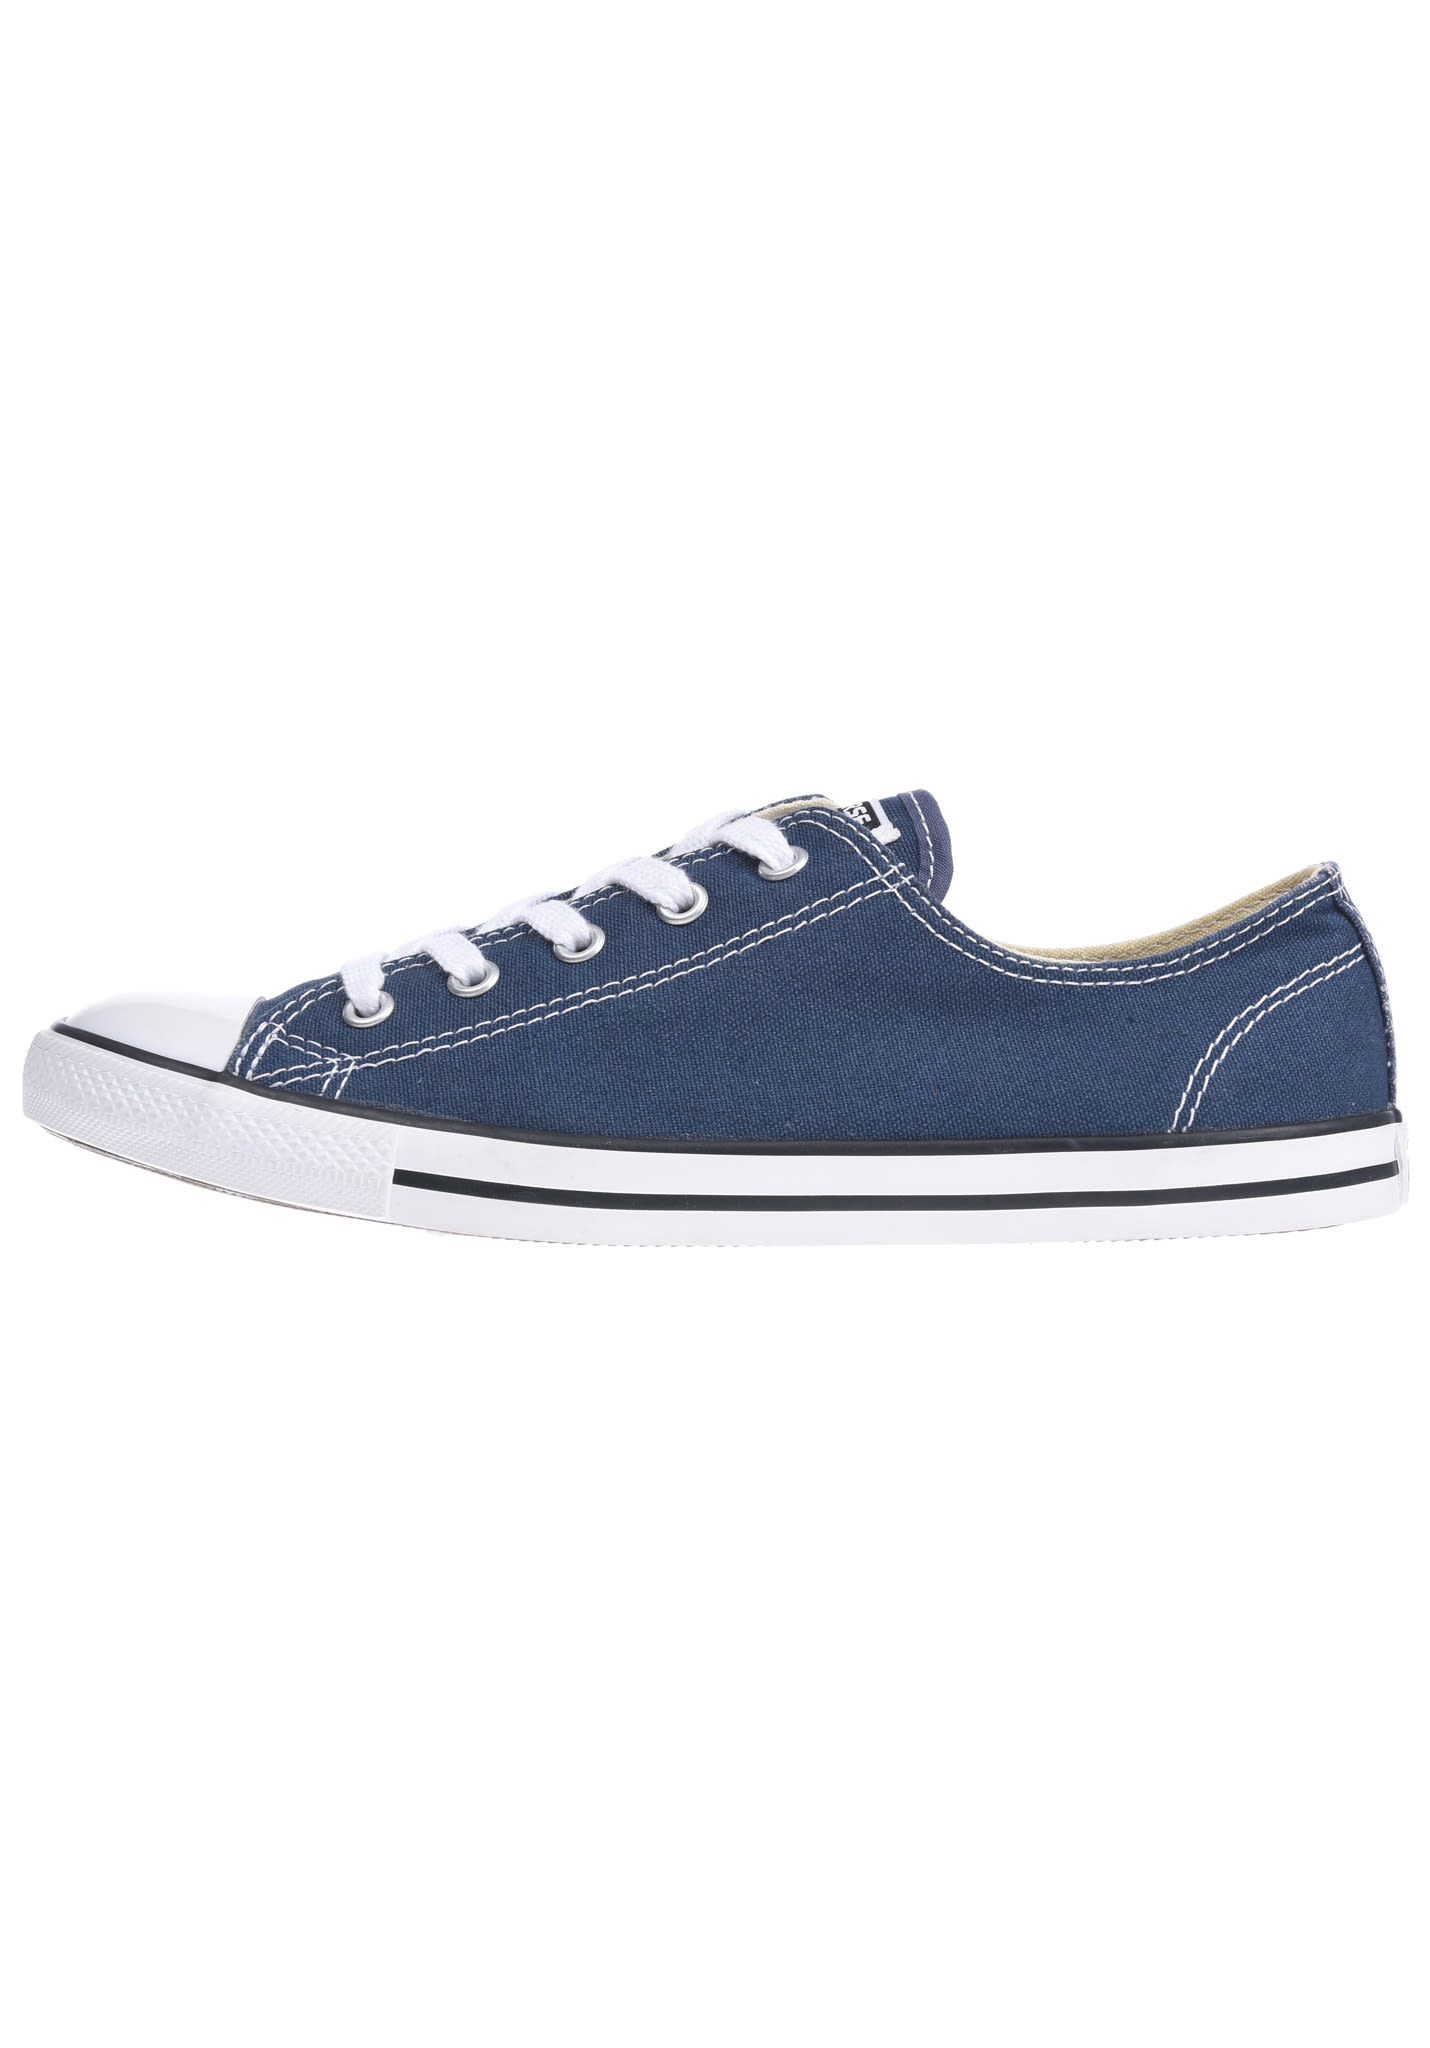 432f872401f1 Converse Chuck Taylor All Star Dainty Ox - Sneakers for Women - Blue -  Planet Sports